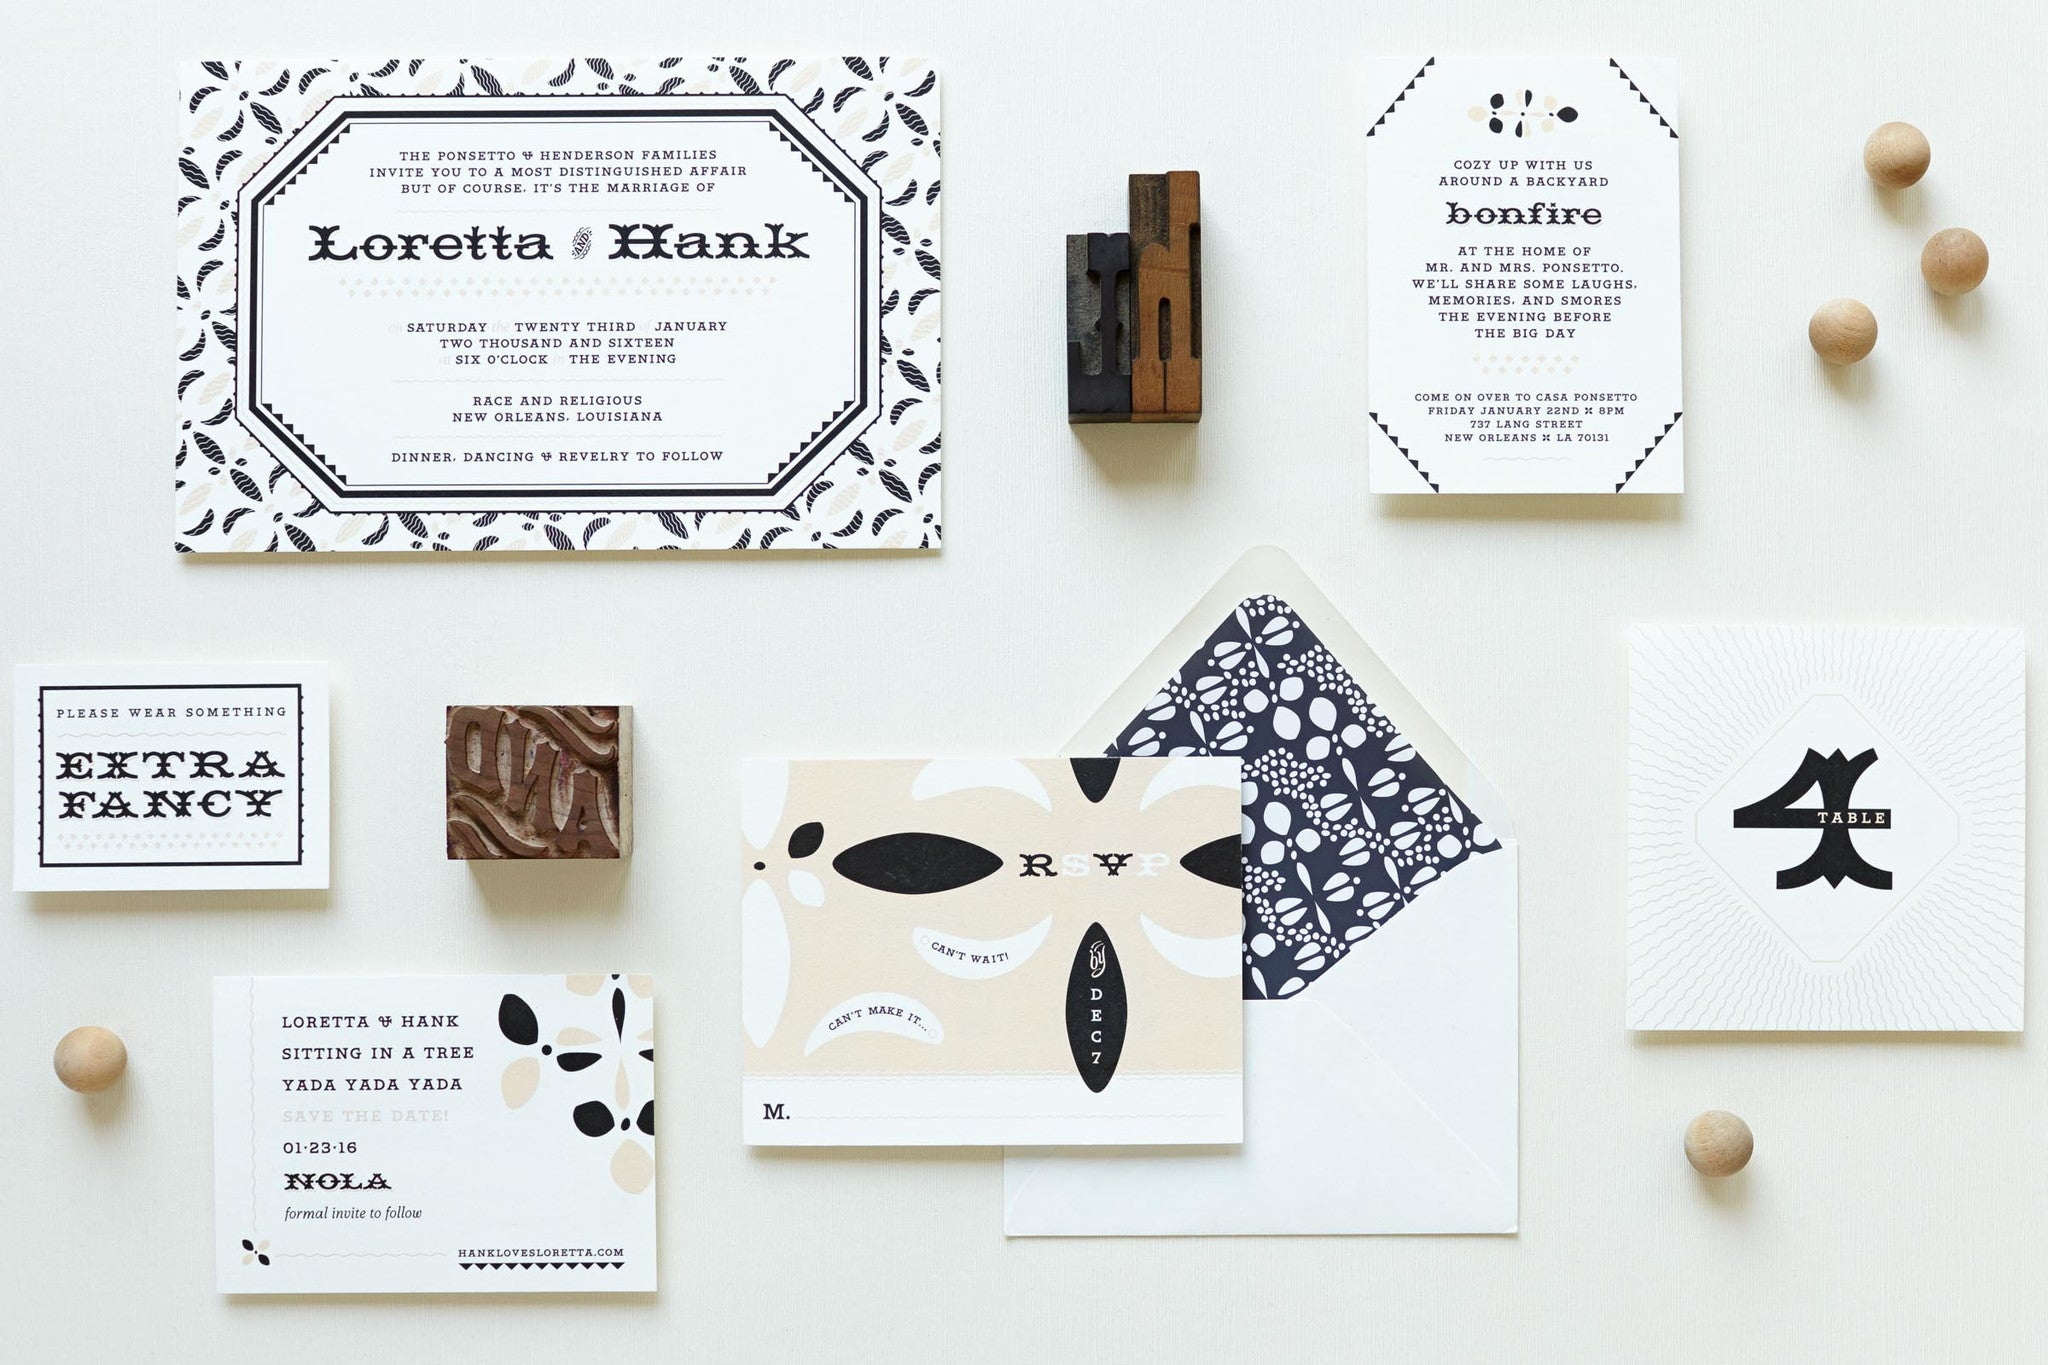 My Darlin' • Ornamental Wood Type Inspired Wedding Invitation Suite: Loretta Darlin' • www.mydarl.in